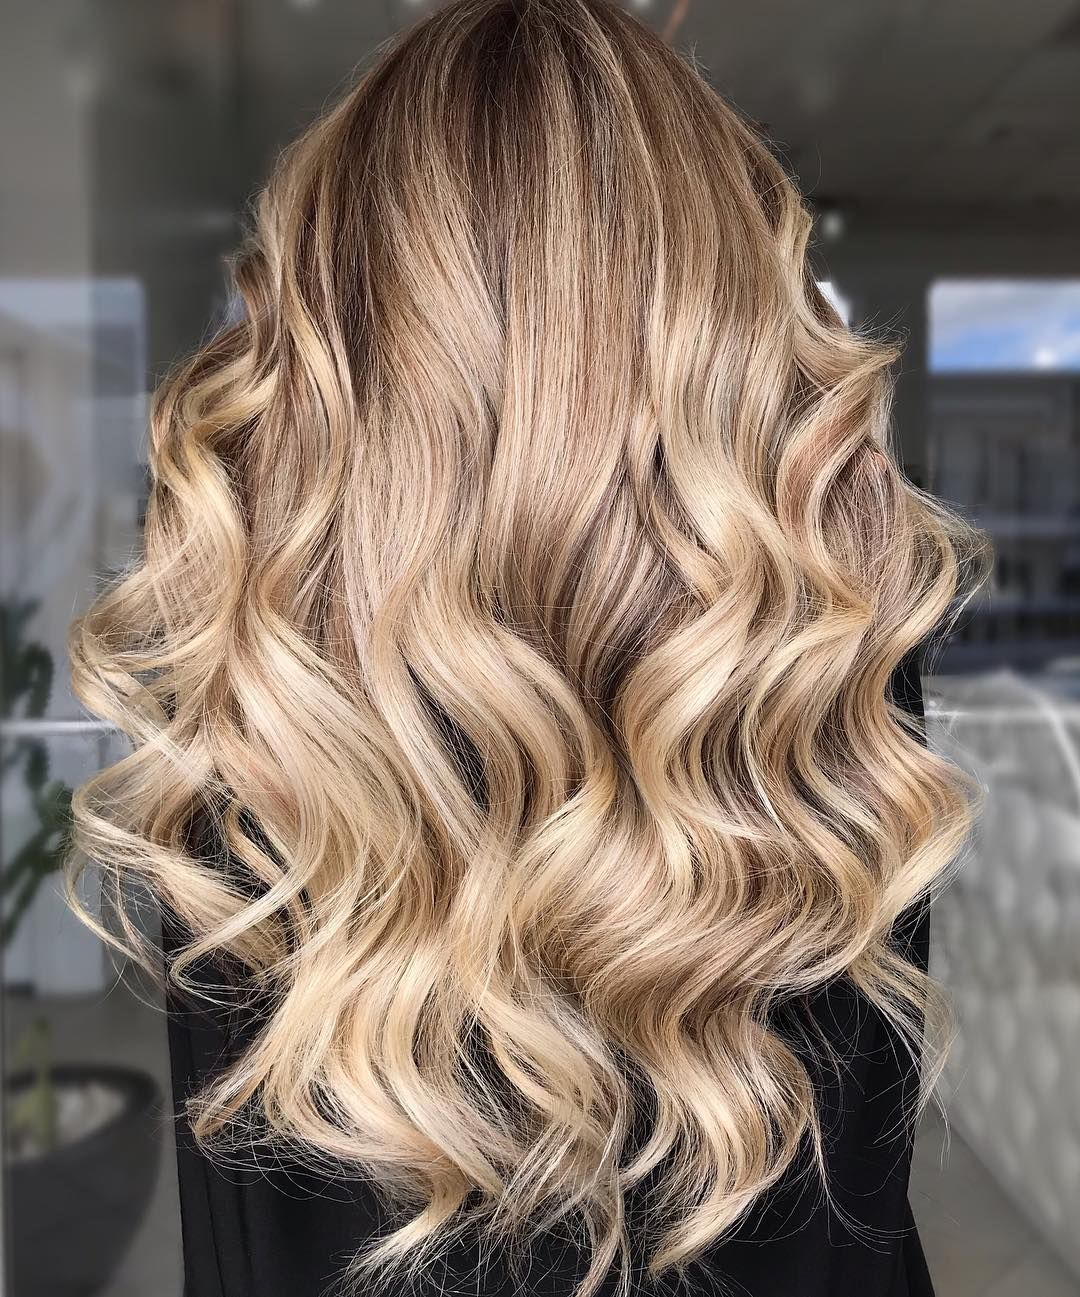 "Sue Tyrrell on Instagram: ""Champagne Shimmer 🥂✨ @wellahairusa @wellahair #wellahair #wellahairusa #askforwella #uswellacolorartist2019 #blondebalayage #blonde…"""